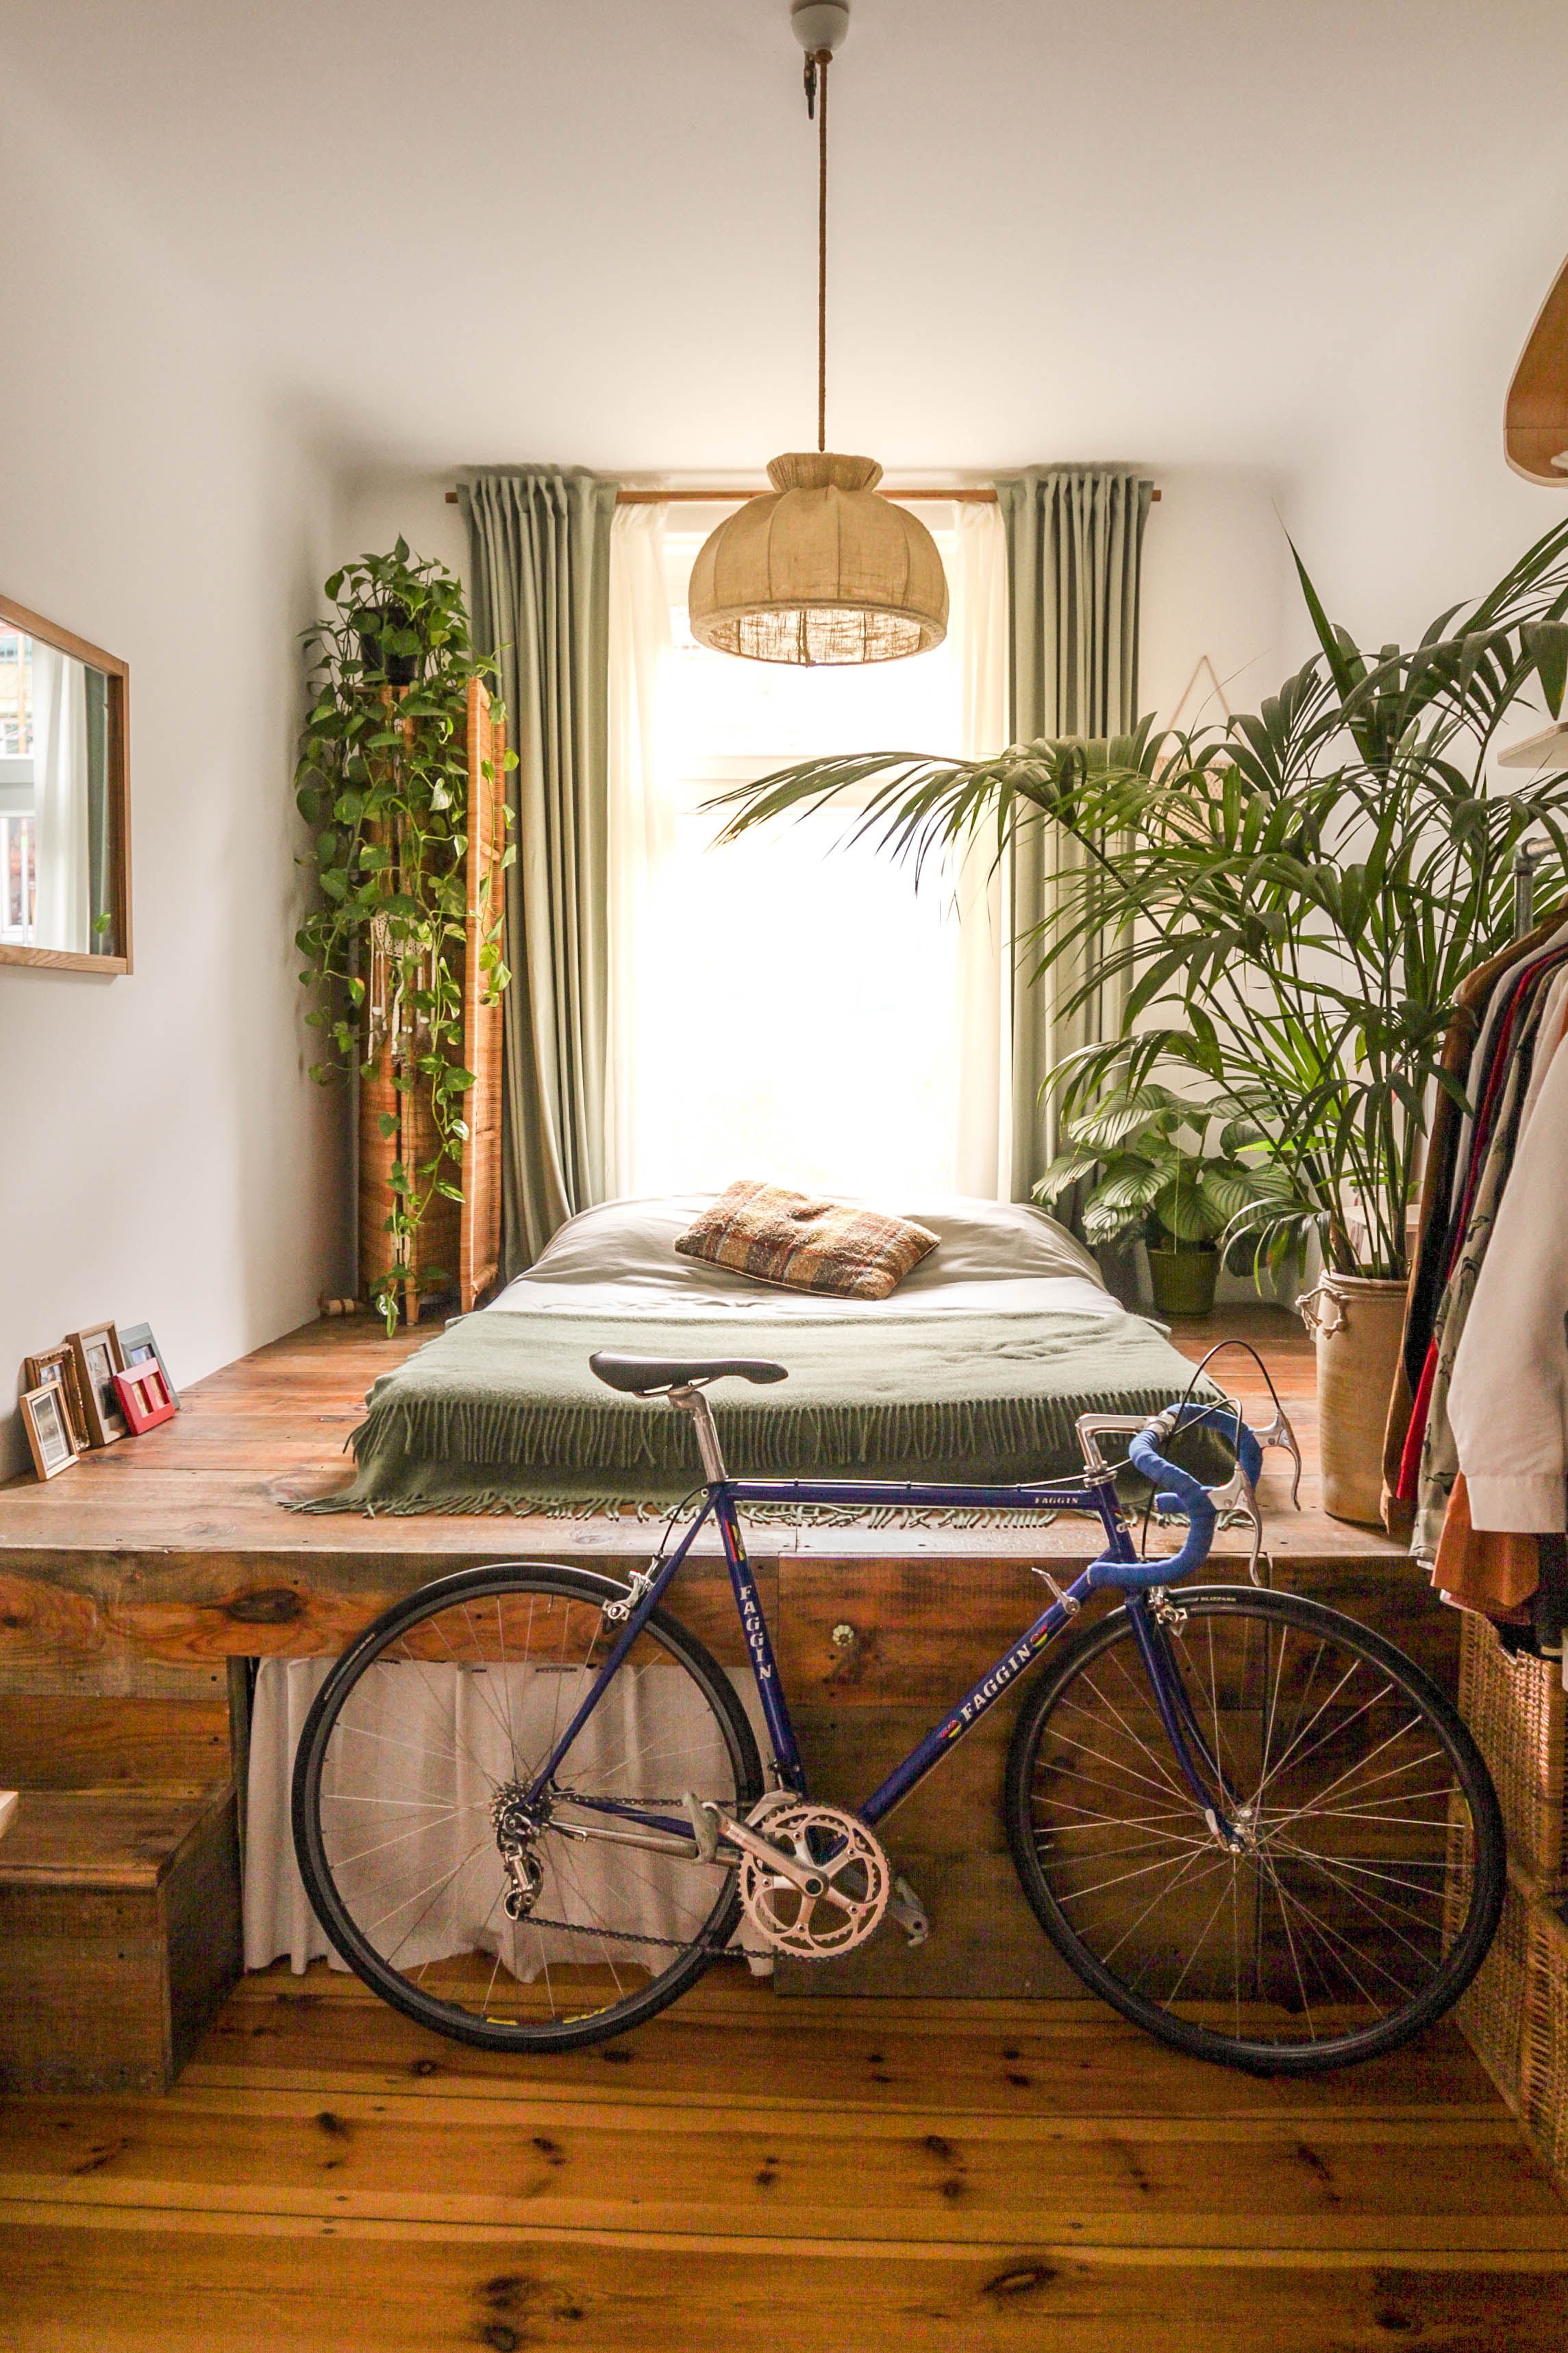 Rent amazing bohemian apartment with bike inside for photoshoots and film shoots via Beazy